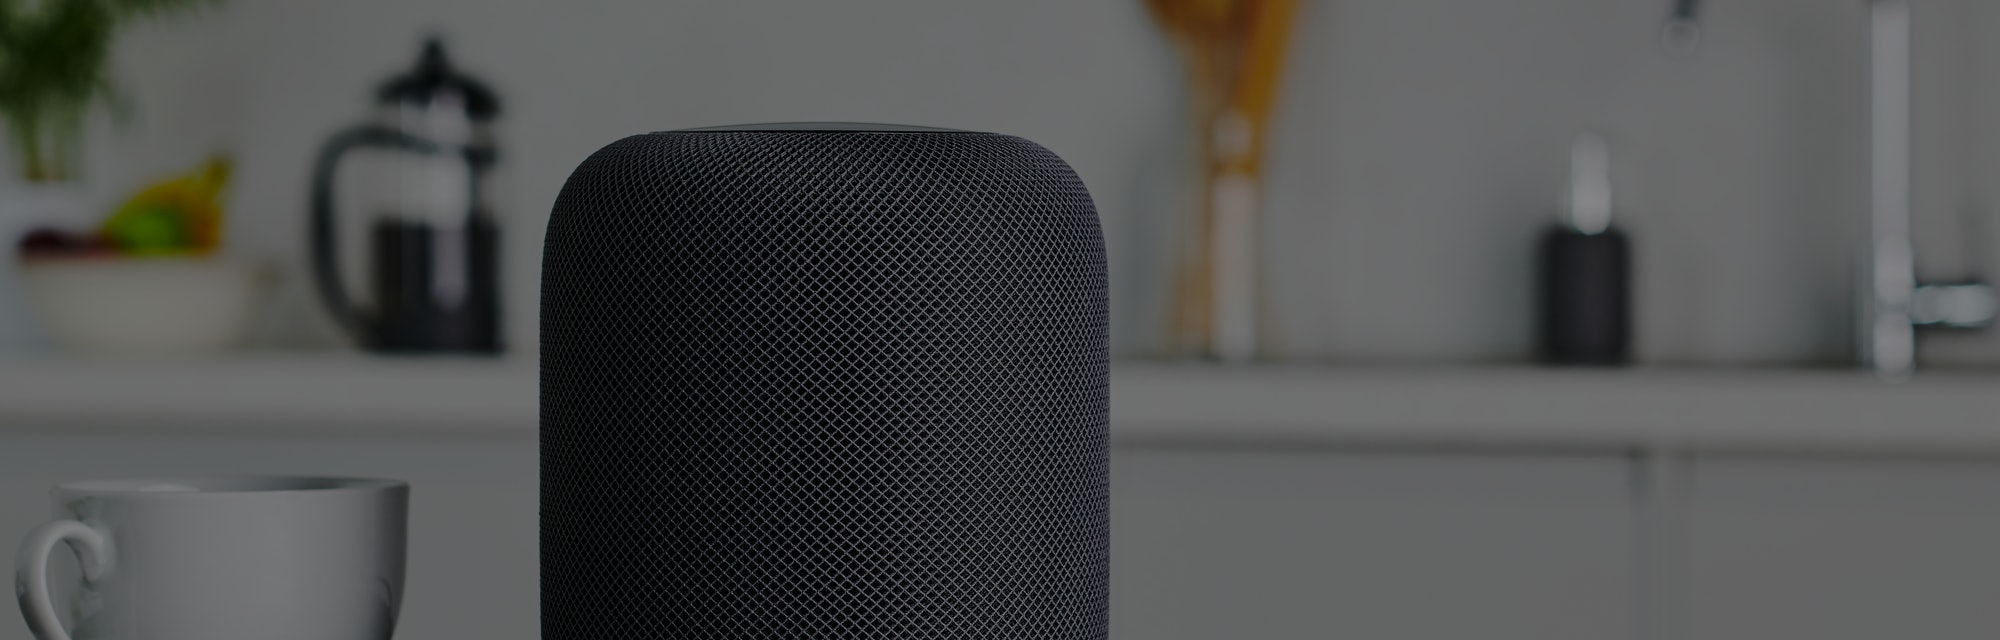 A HomePod on a kitchen table